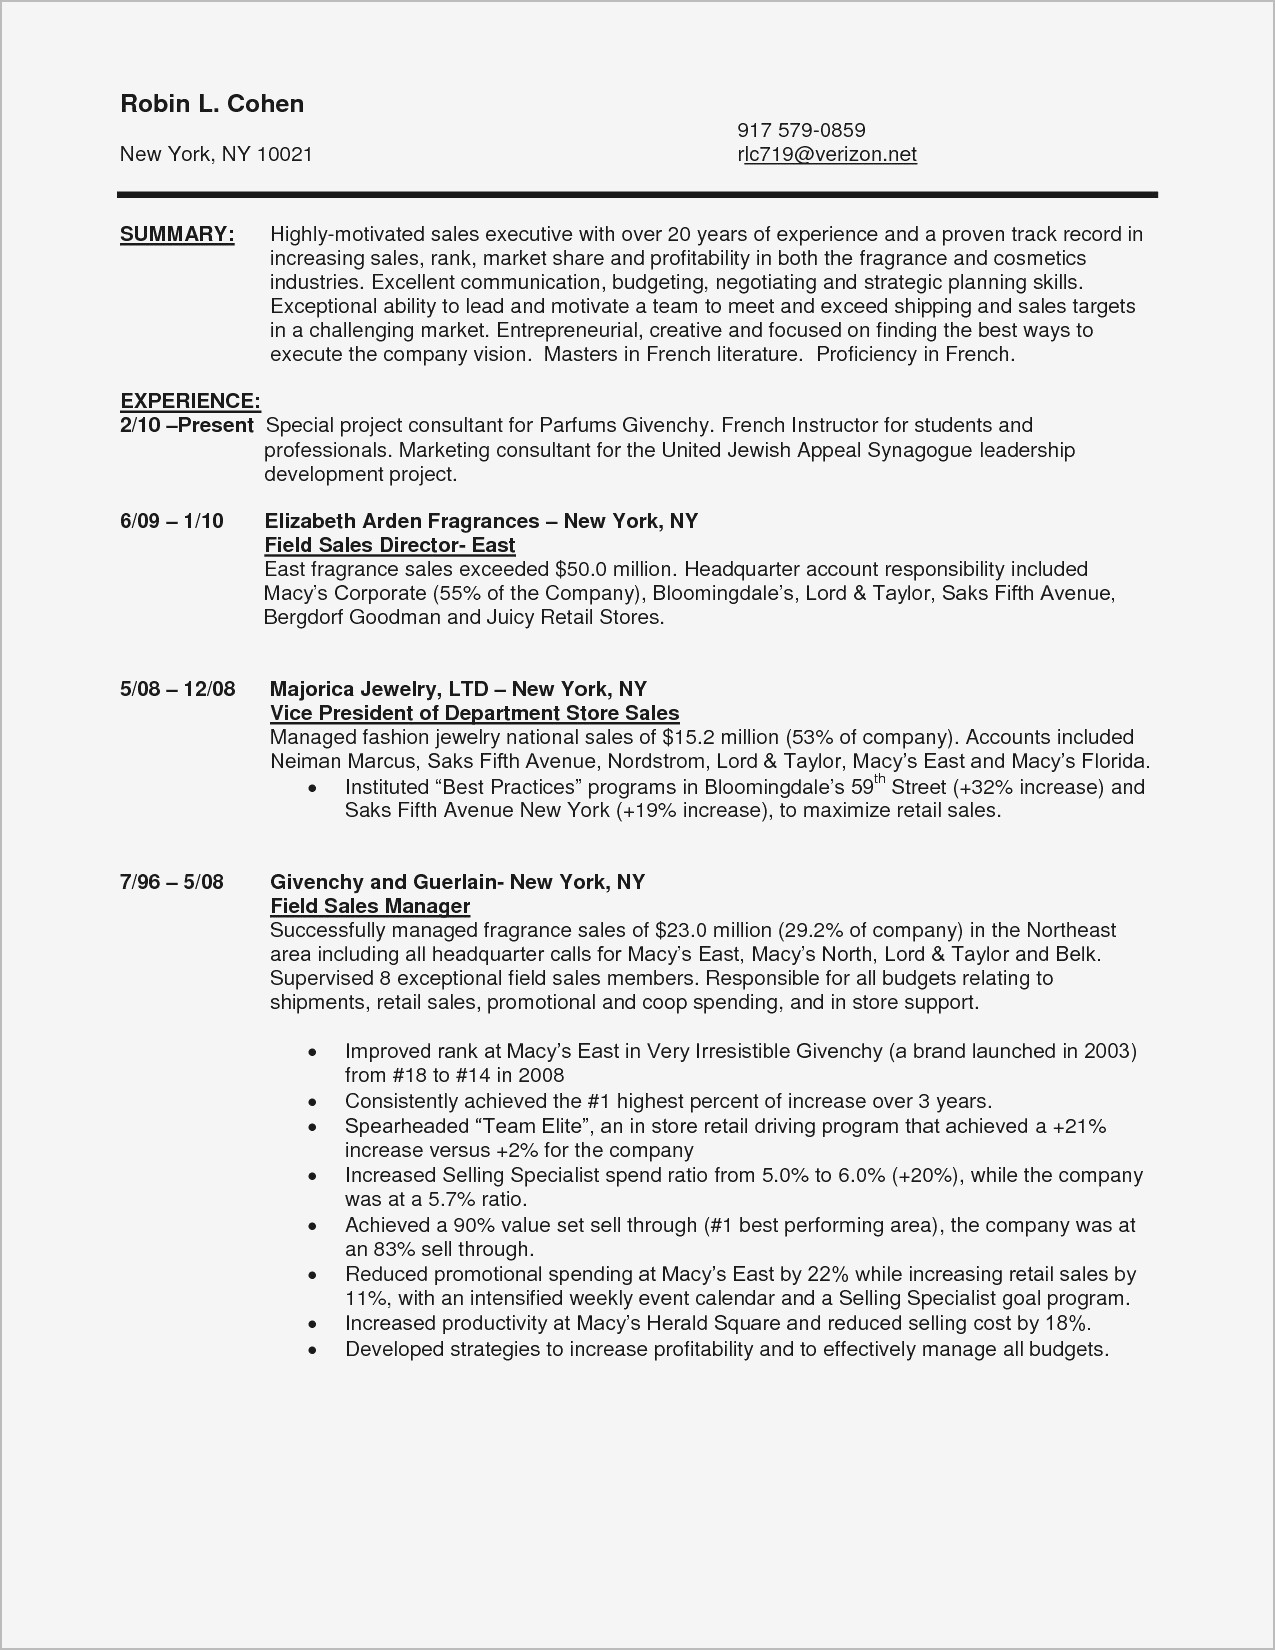 resume template for sales manager Collection-Resume For Internal Promotion Template Sample Pdf Beautiful American Resume Sample New Student Resume 0d Wallpapers 42 5-g